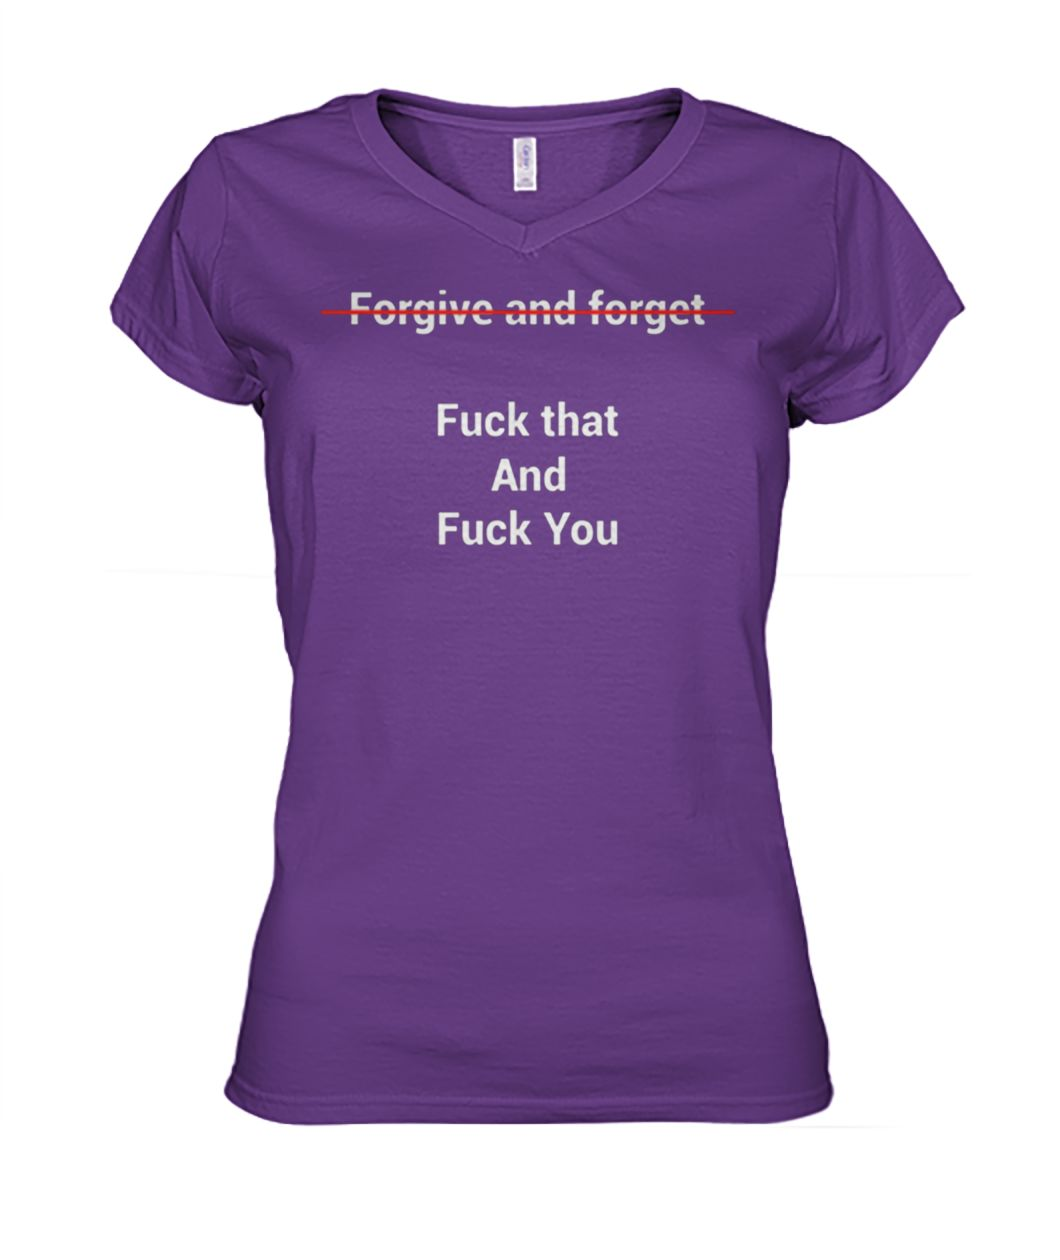 [Hot version] Forgive and forget fuck that and fuck you shirt